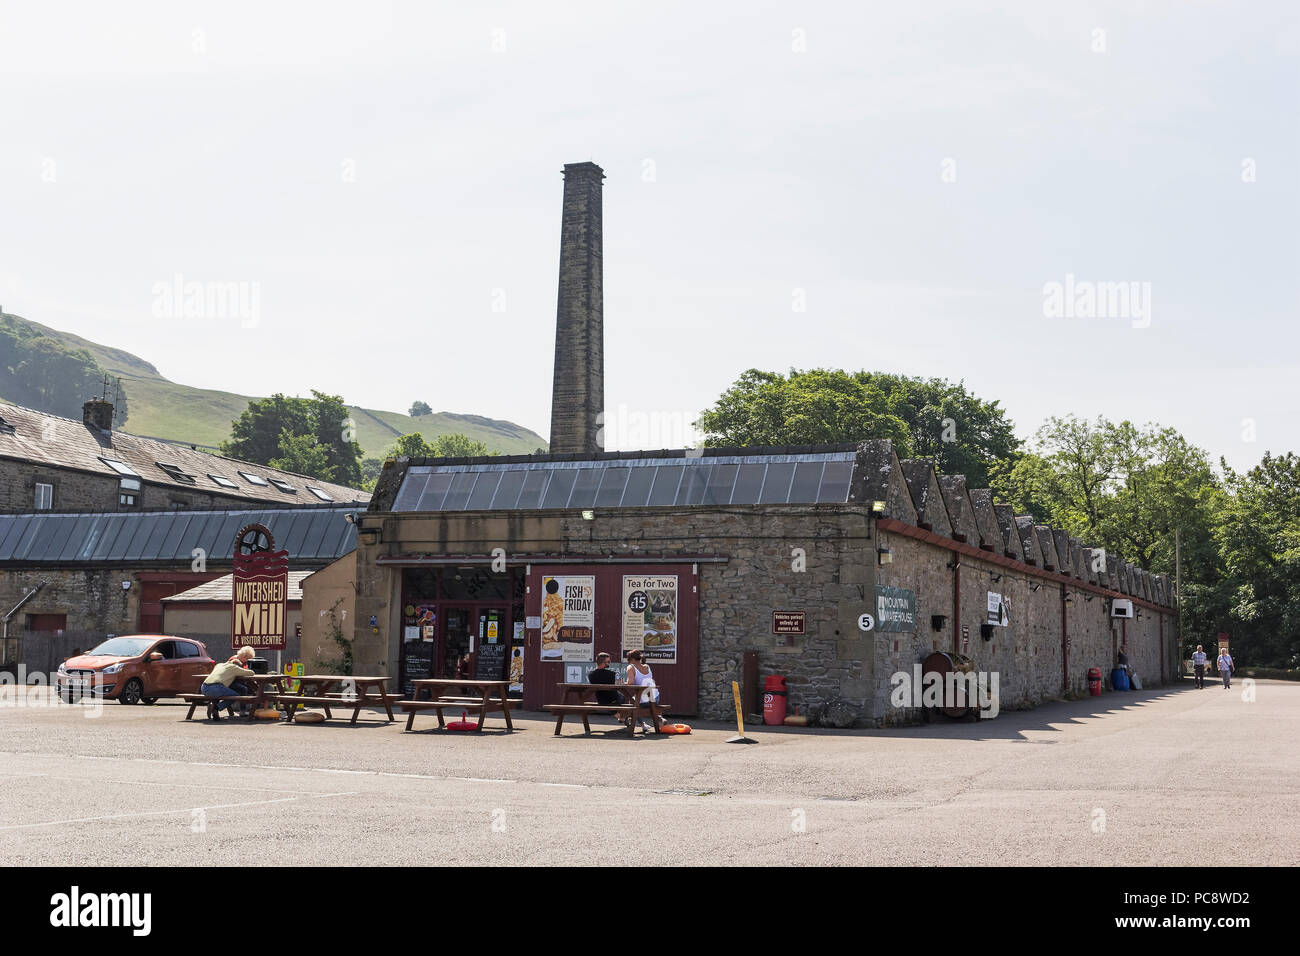 Watershed Mill outdoor shop and cafe at Settle, North Yorkshire, UK - Stock Image